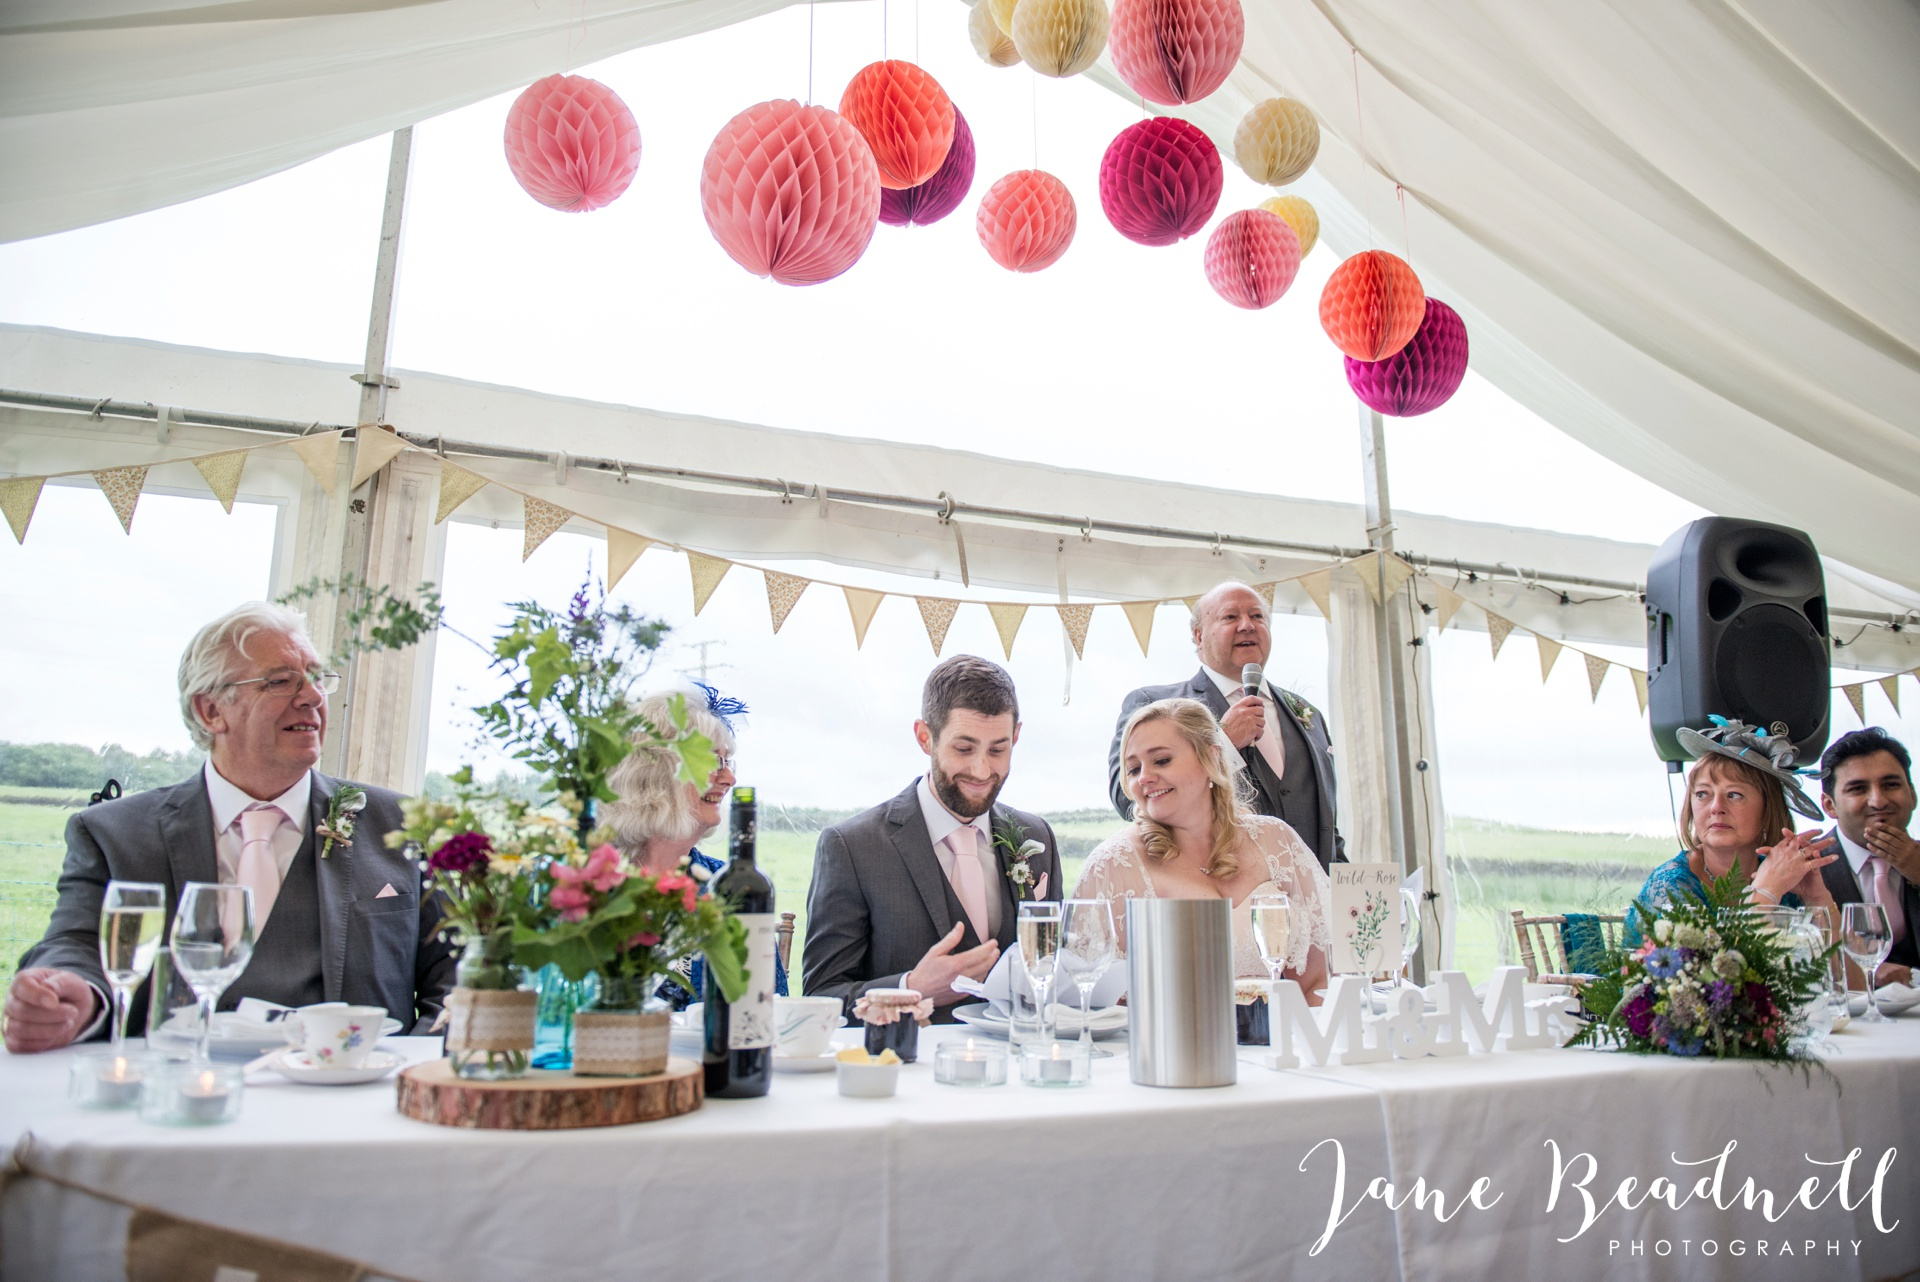 Yorkshire Wedding Photography the cheerful Chilli Barn Wedding by Jane Beadnell Photography_0162